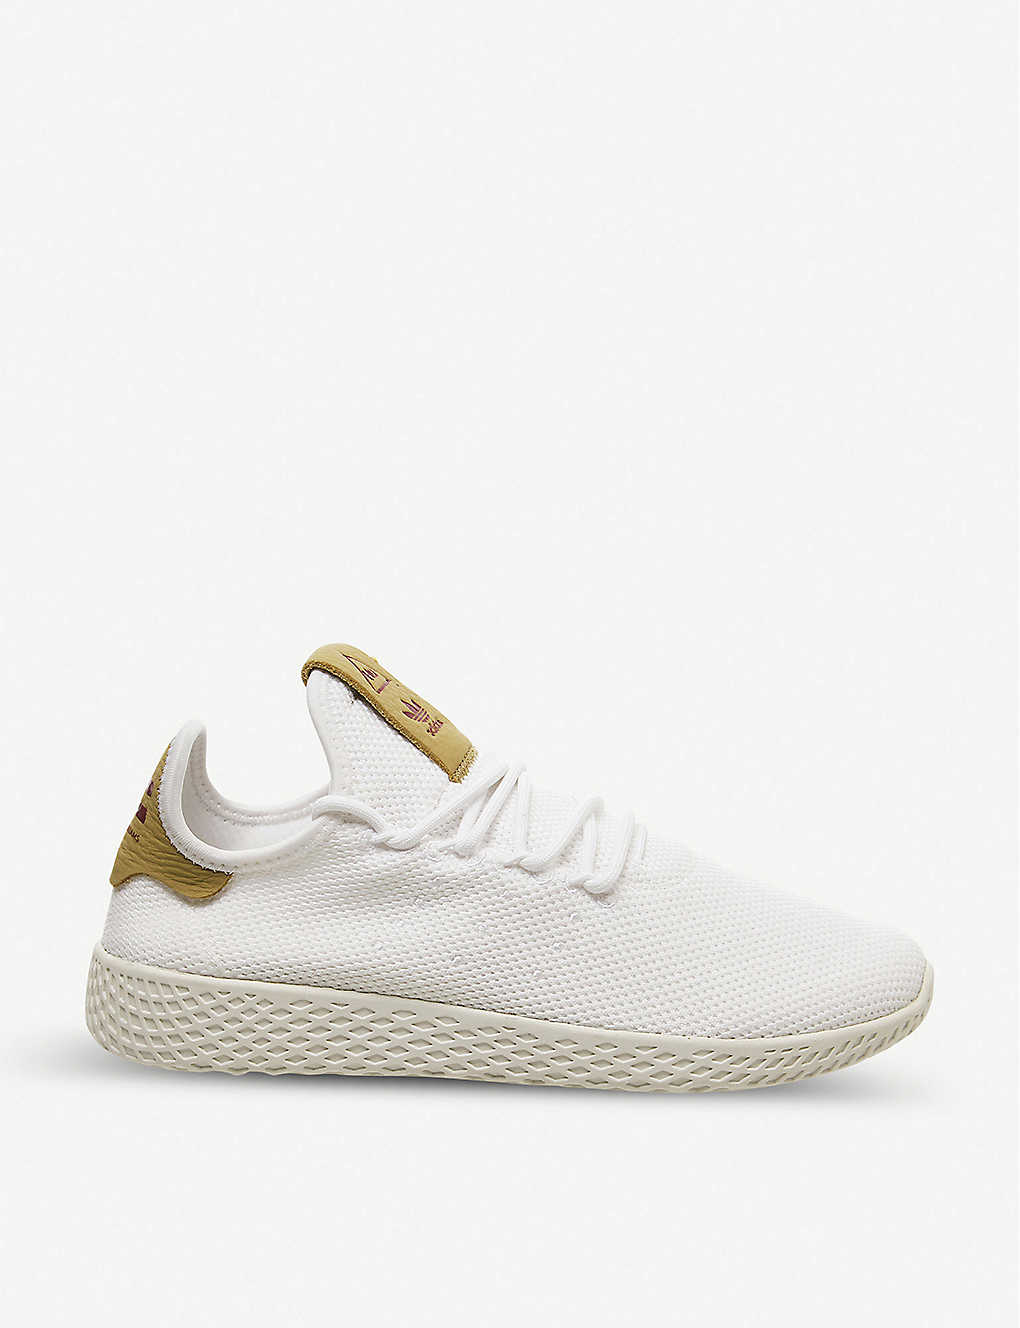 ADIDAS: adidas x Pharrell Williams Tennis Hu knit trainers